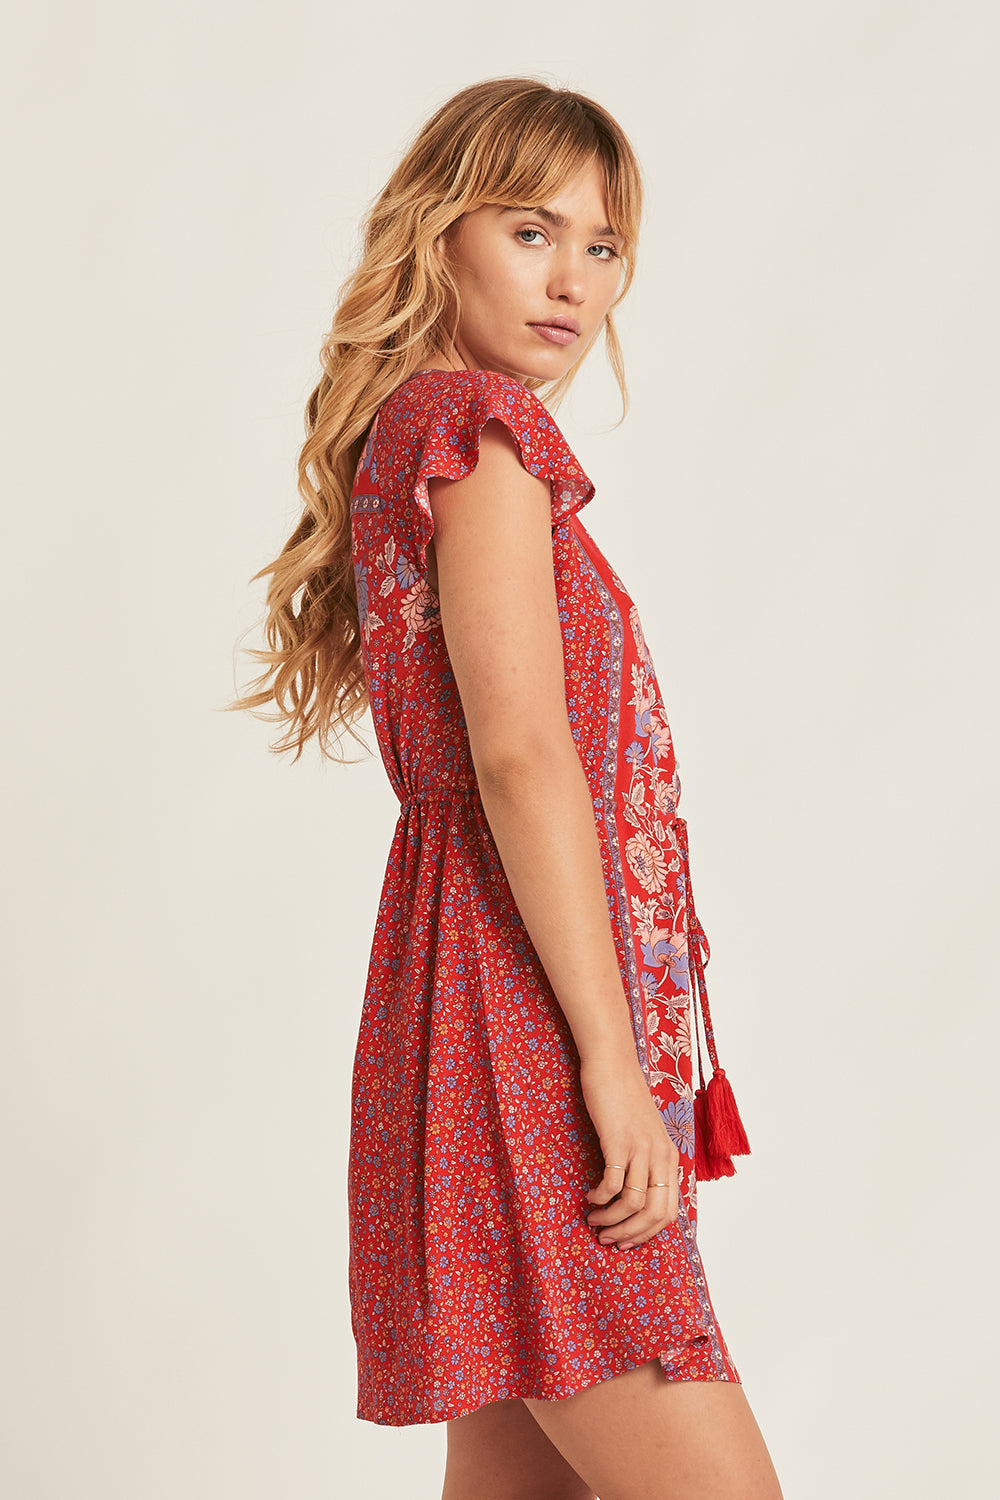 Ophelia Mini Dress in Salsa